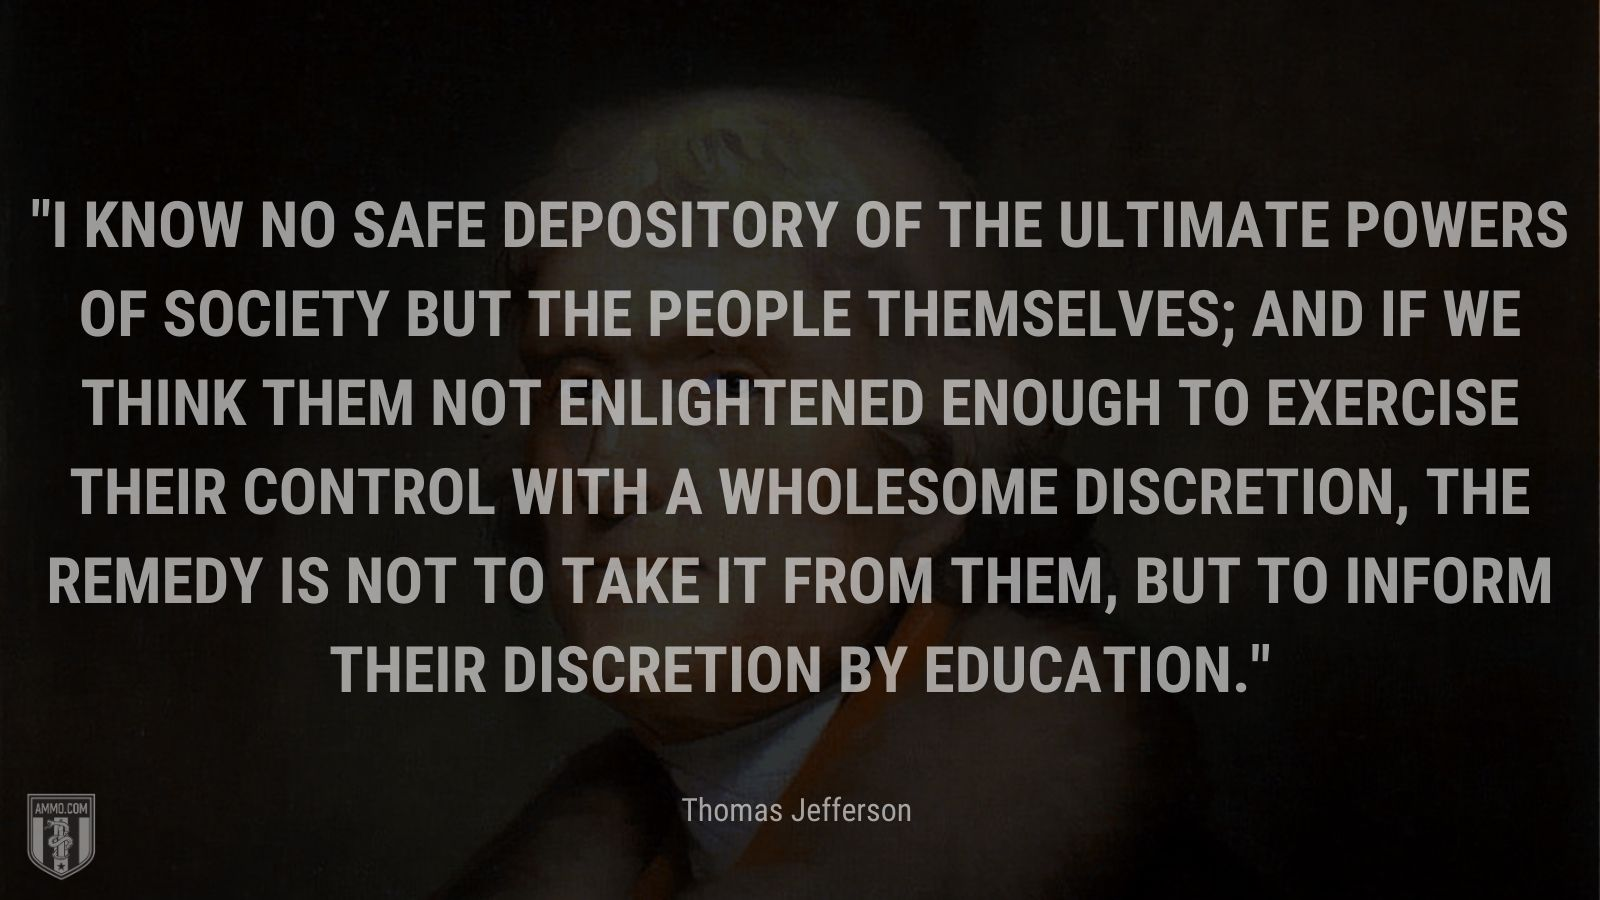 """""""I know no safe depository of the ultimate powers of society but the people themselves; and if we think them not enlightened enough to exercise their control with a wholesome discretion, the remedy is not to take it from them, but to inform their discretion by education."""" - Thomas Jefferson"""